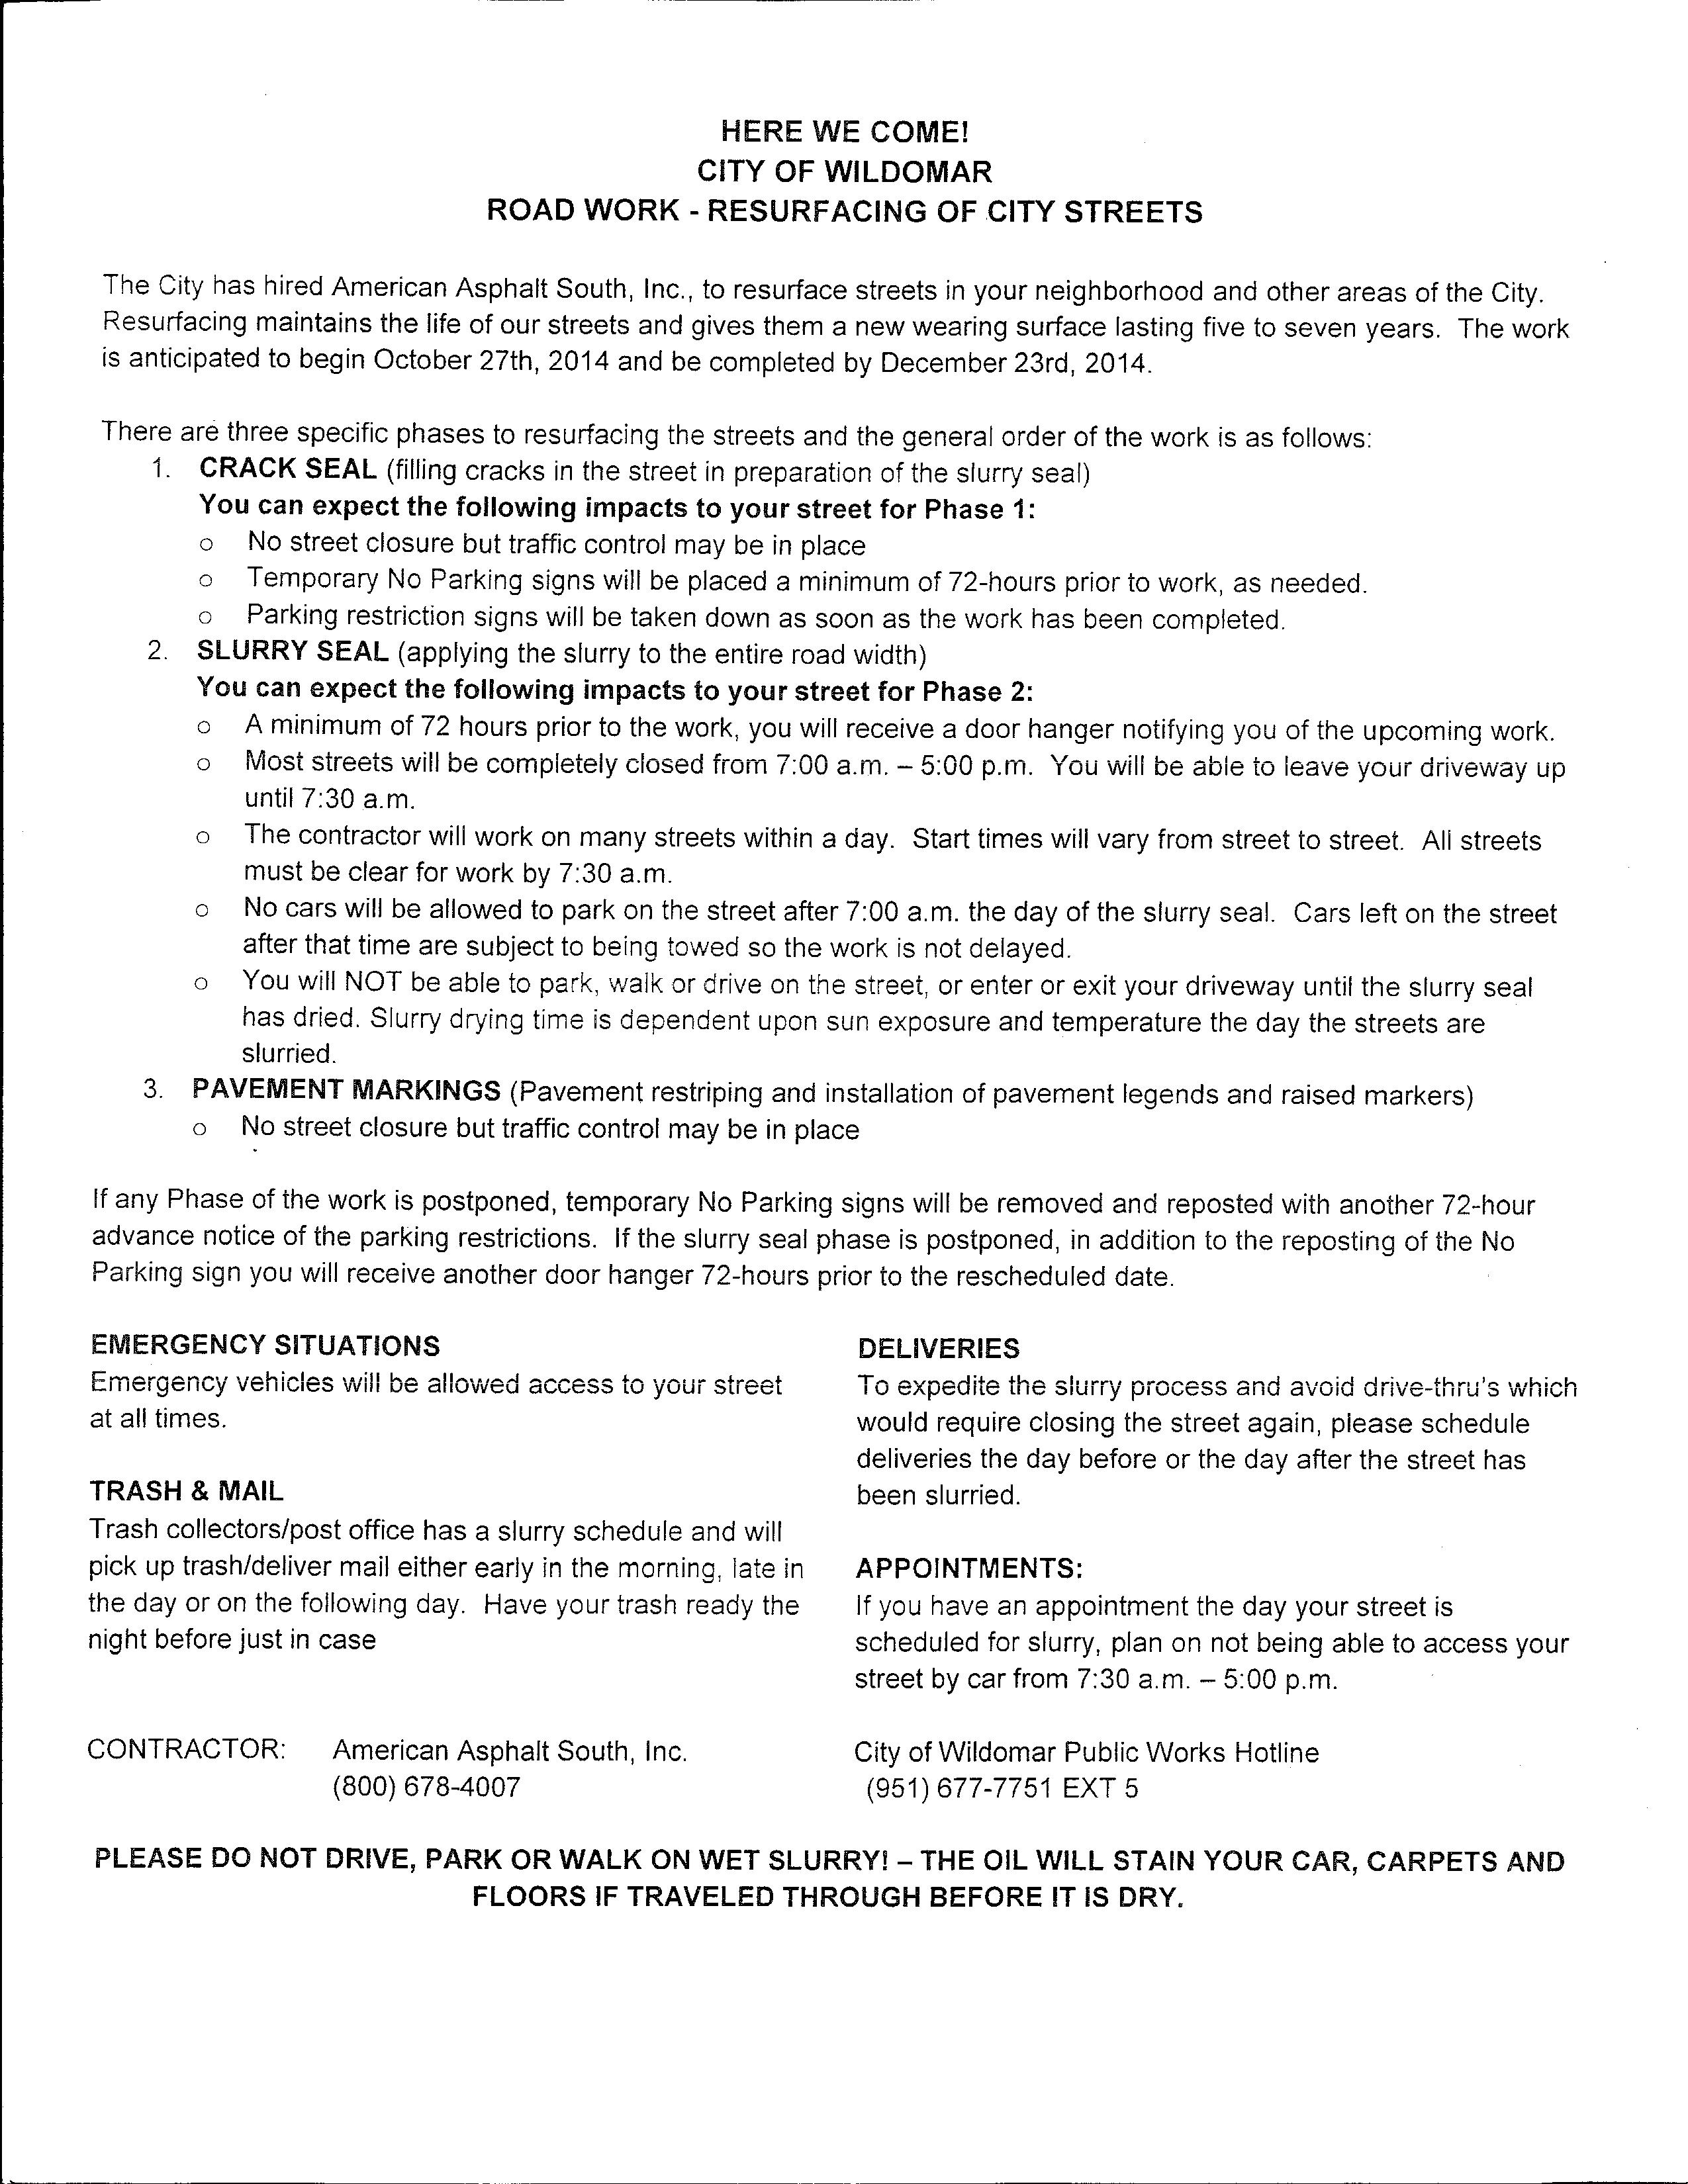 This notice was received by residents on November 14, 2014